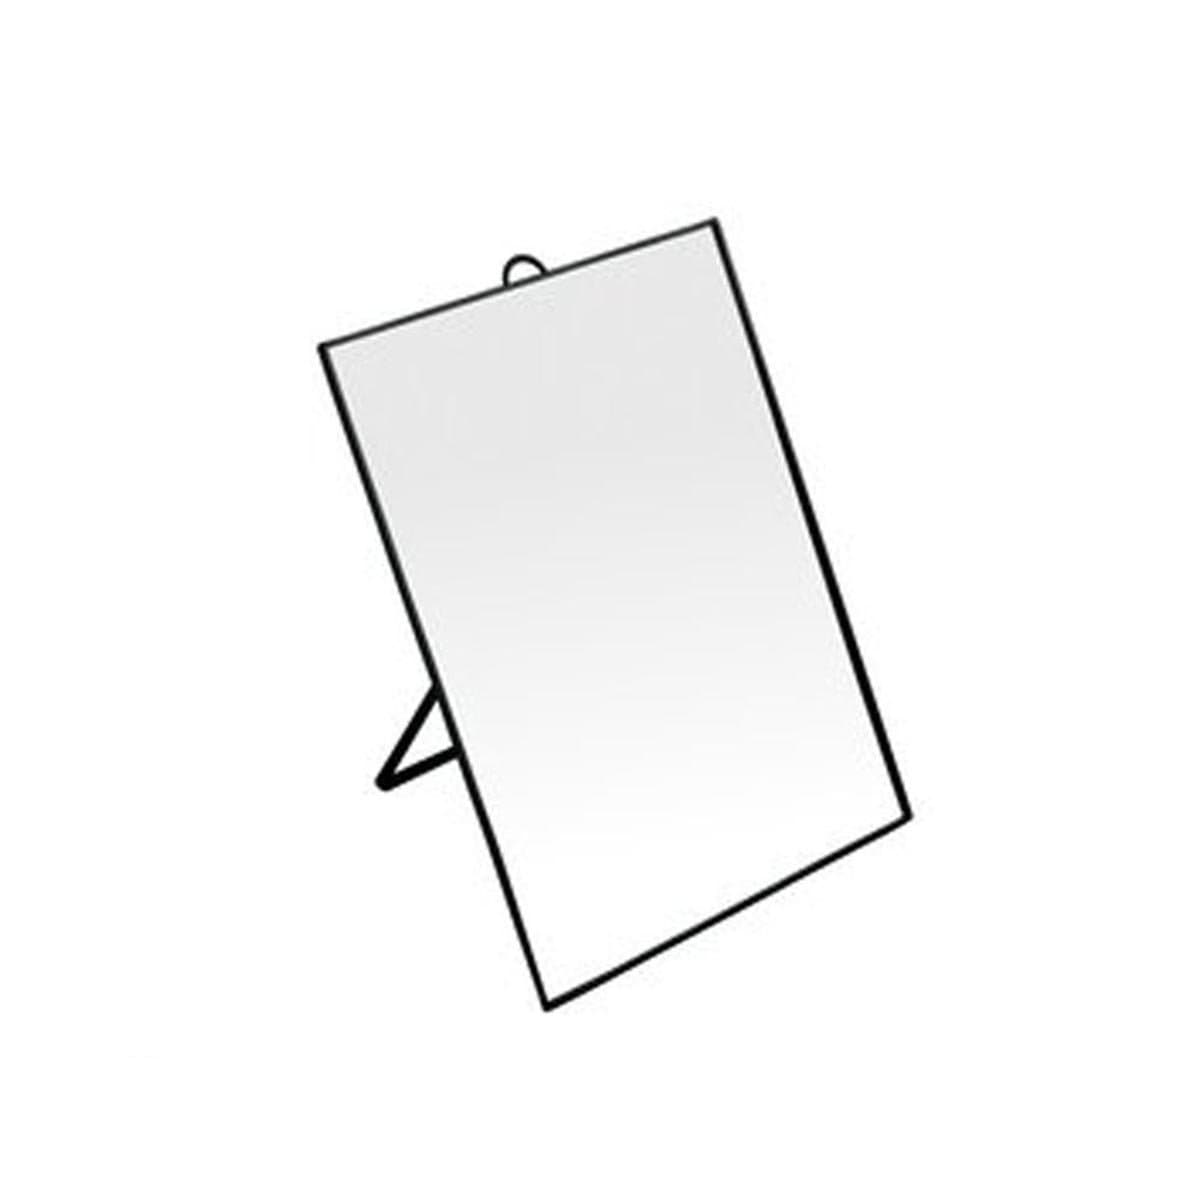 Japanese Multiple Use Plastic Mirror Large Size